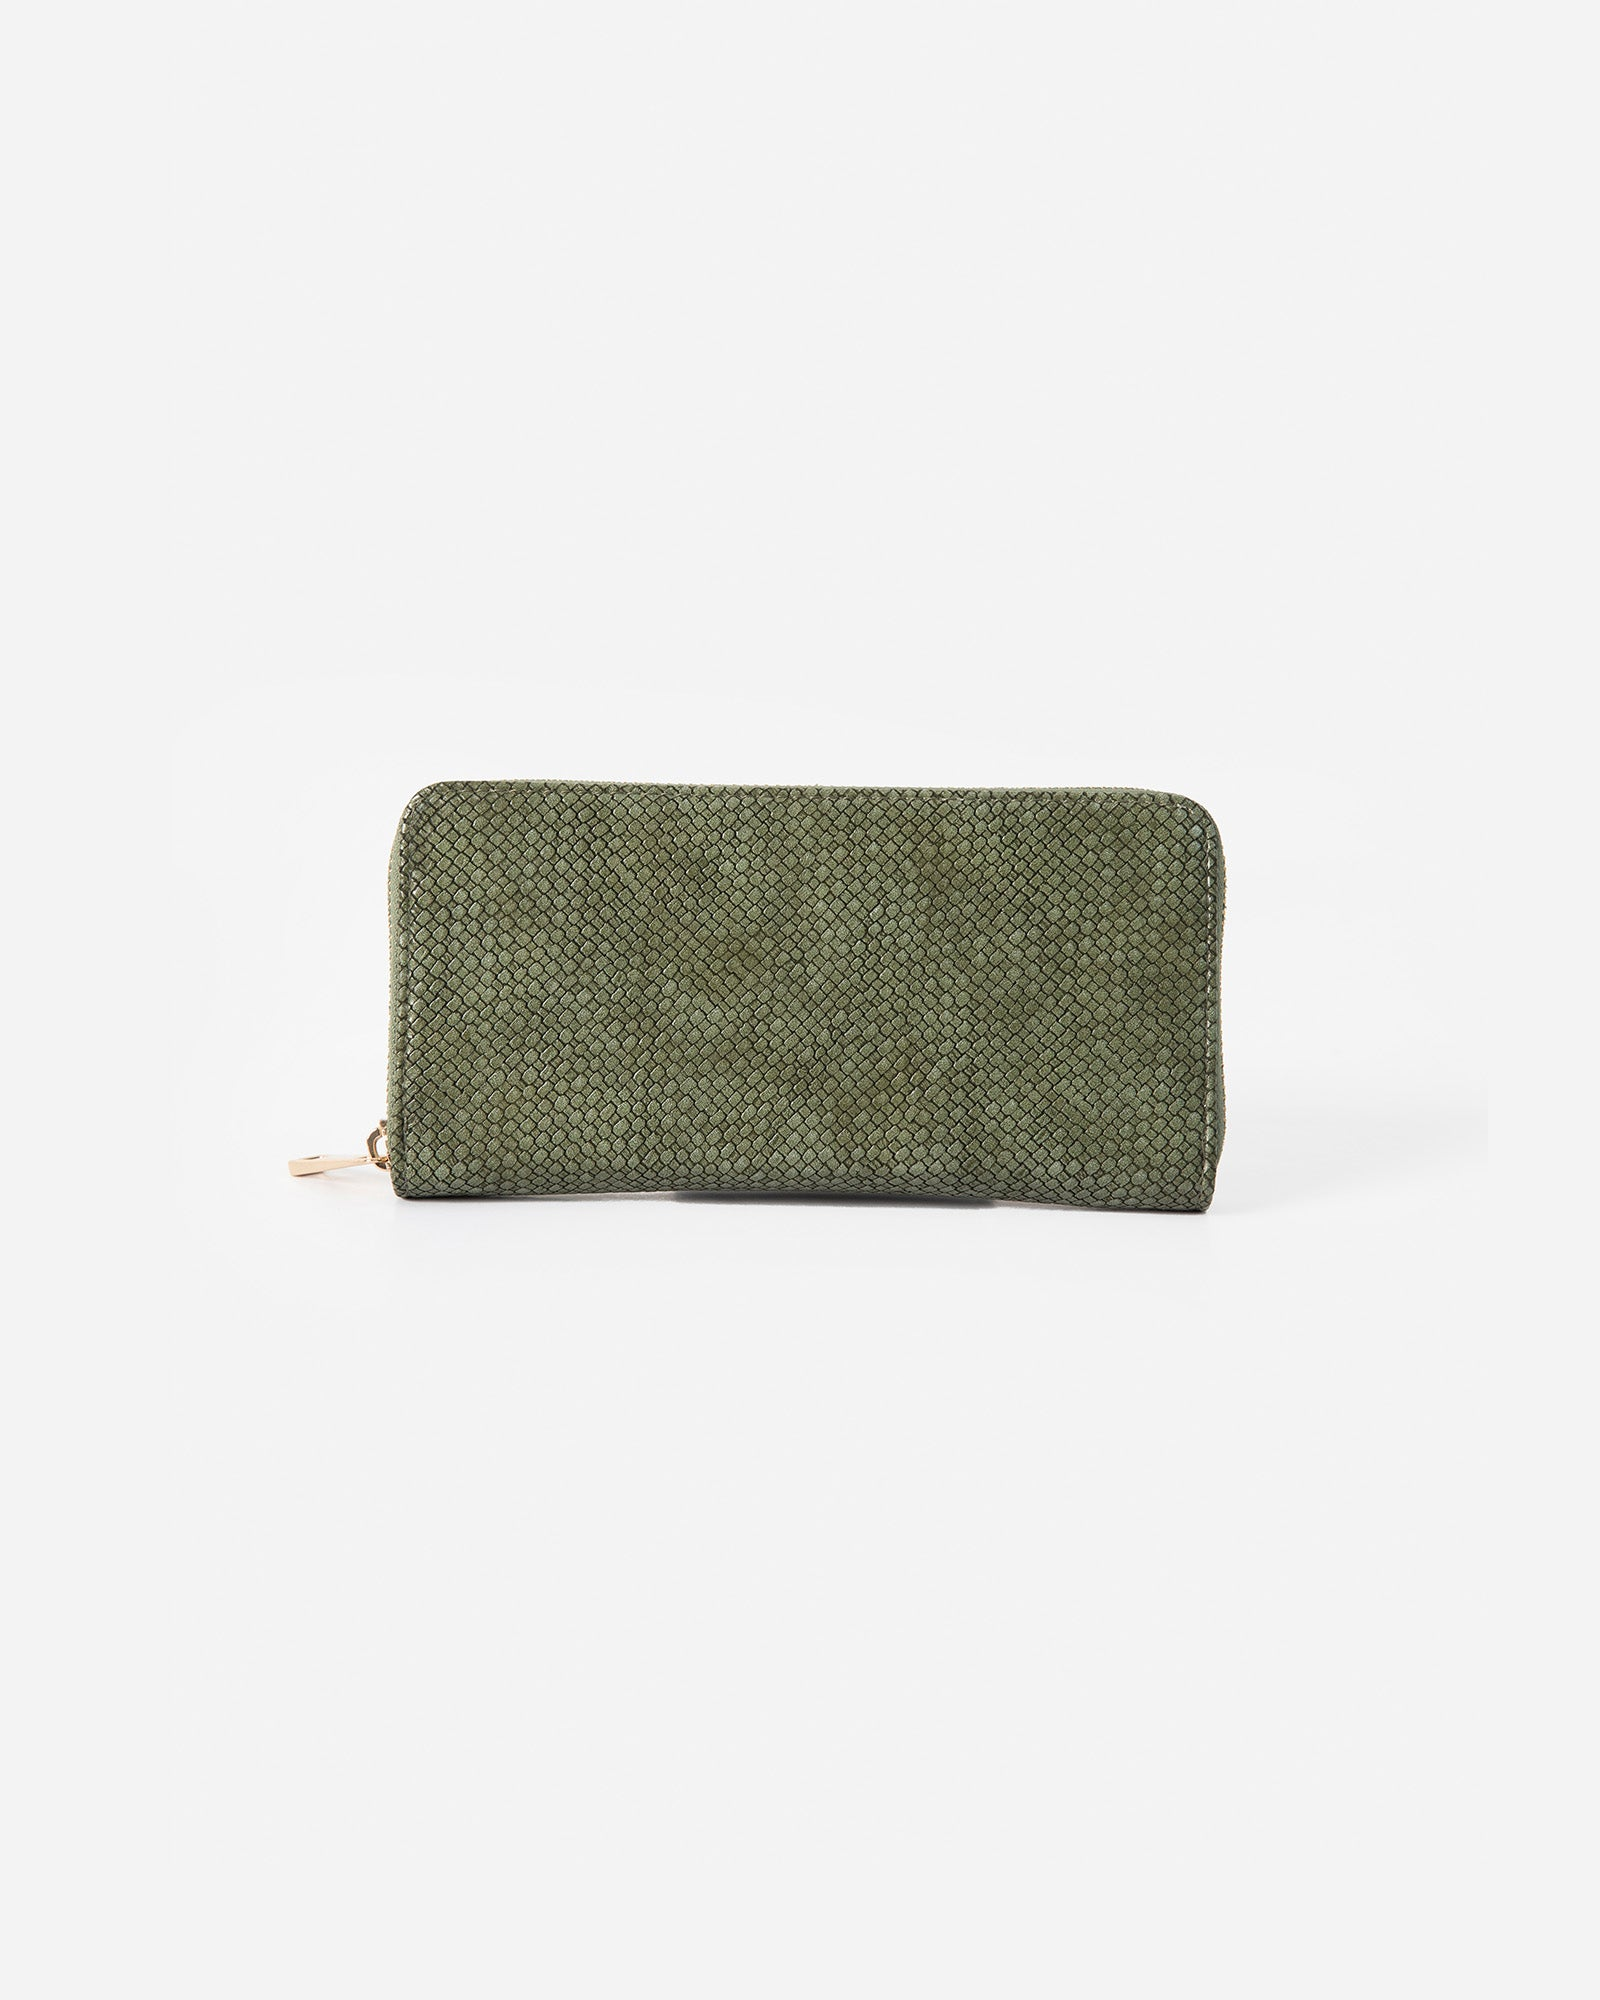 Croc Textured Zipper Wallet